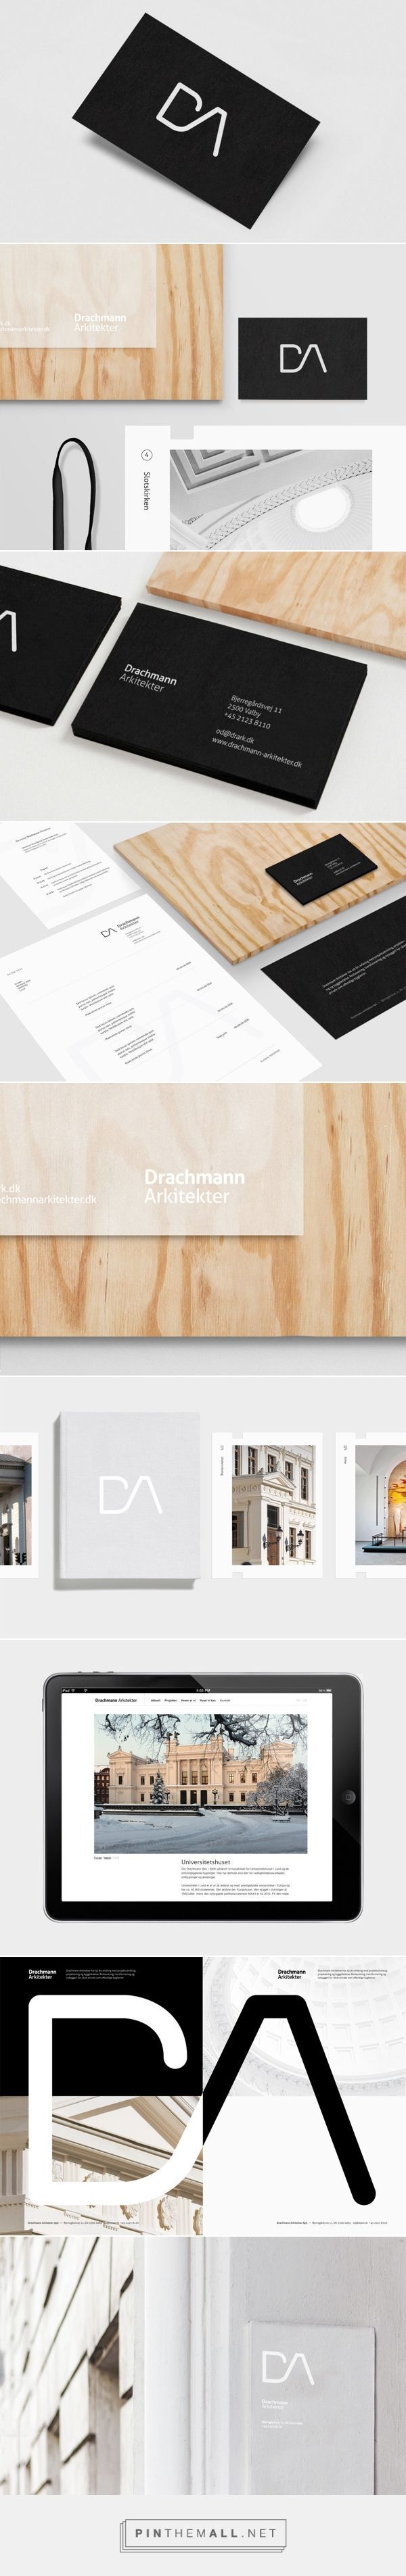 DA Architects Branding Graphic Design Identity and website for